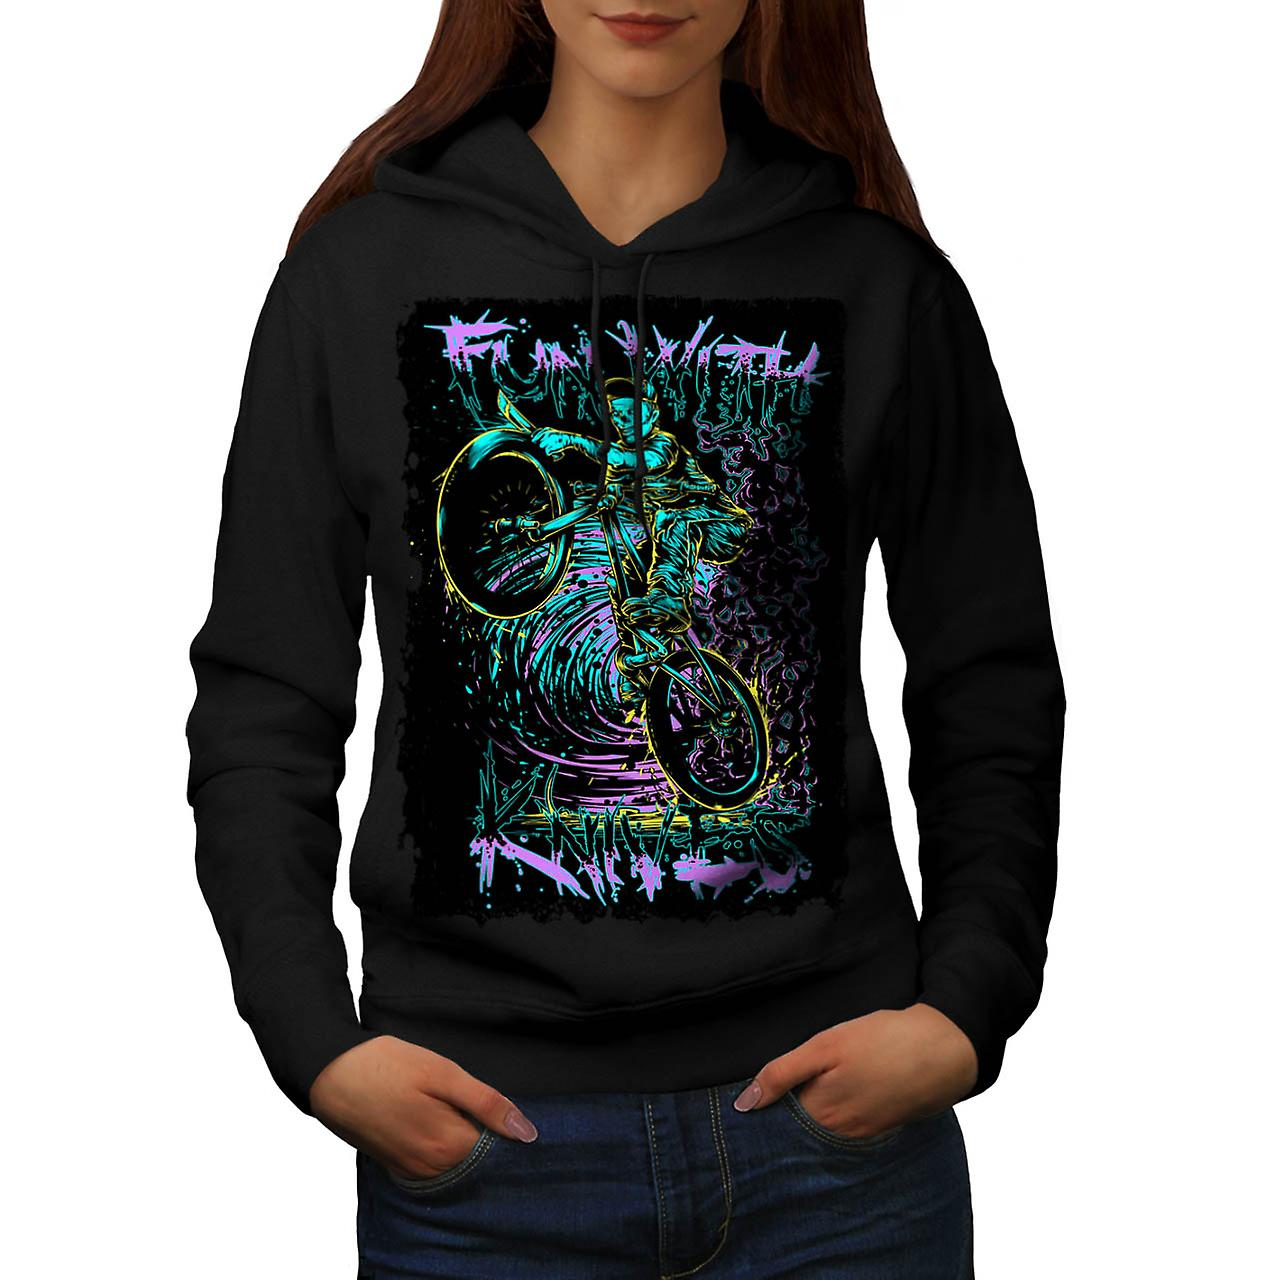 Fun With Knives Rider Zombie Bike Women Black Hoodie | Wellcoda